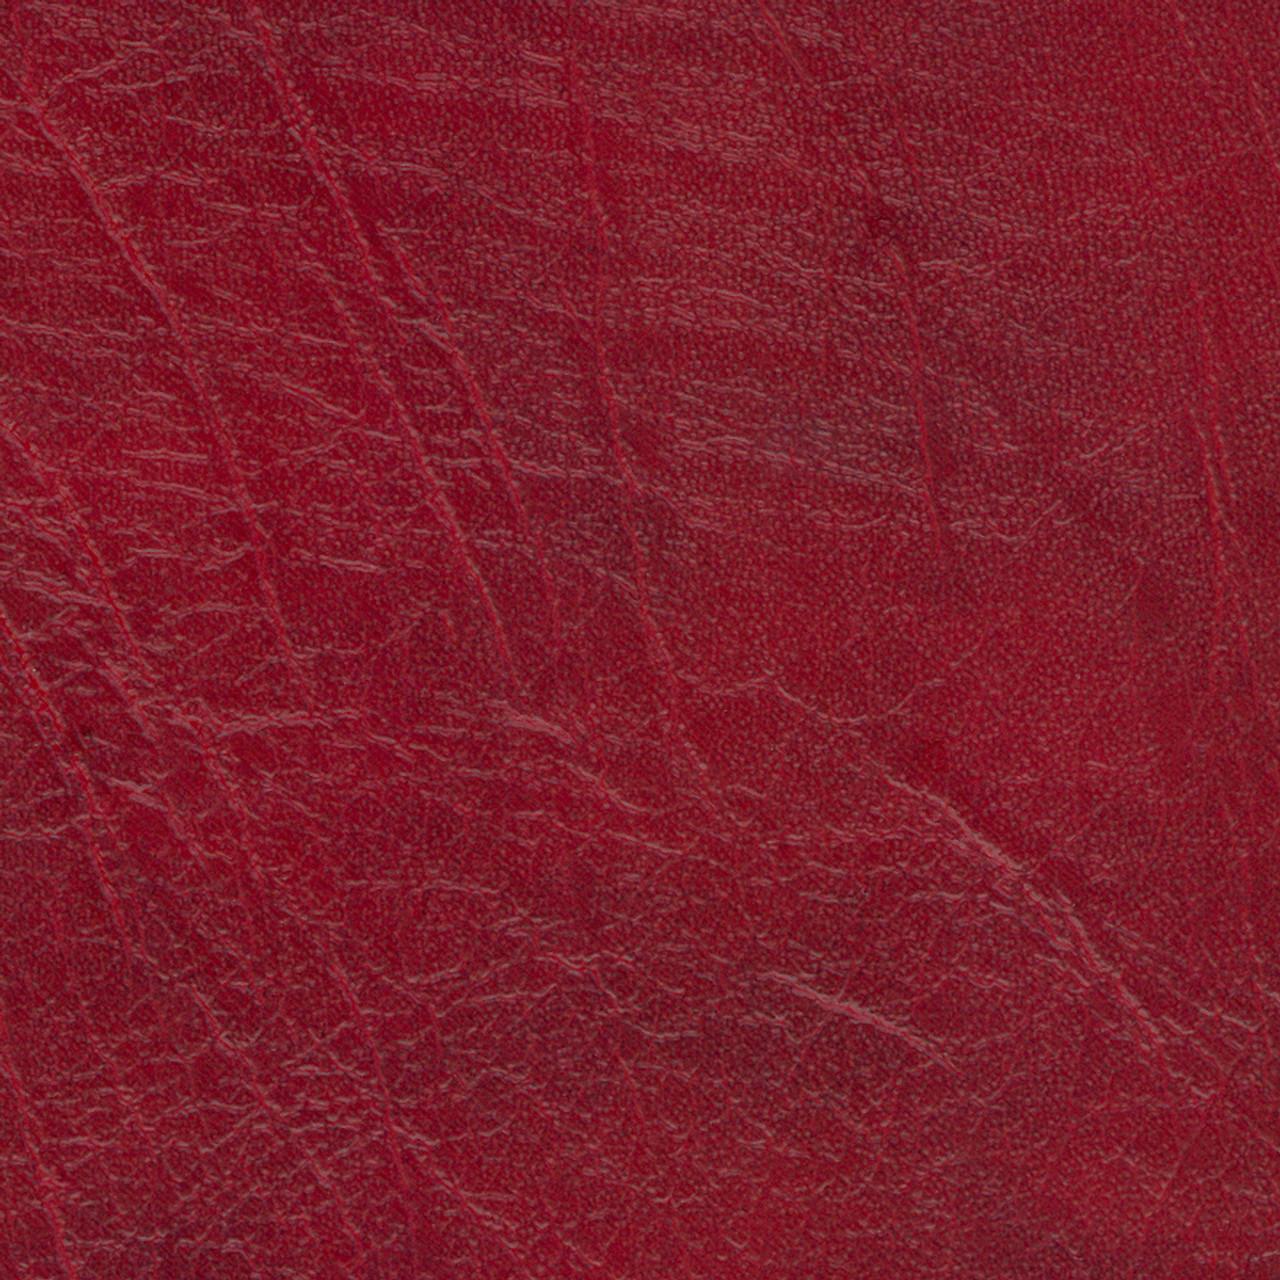 Oxen Soft OXS-9843 Maroon